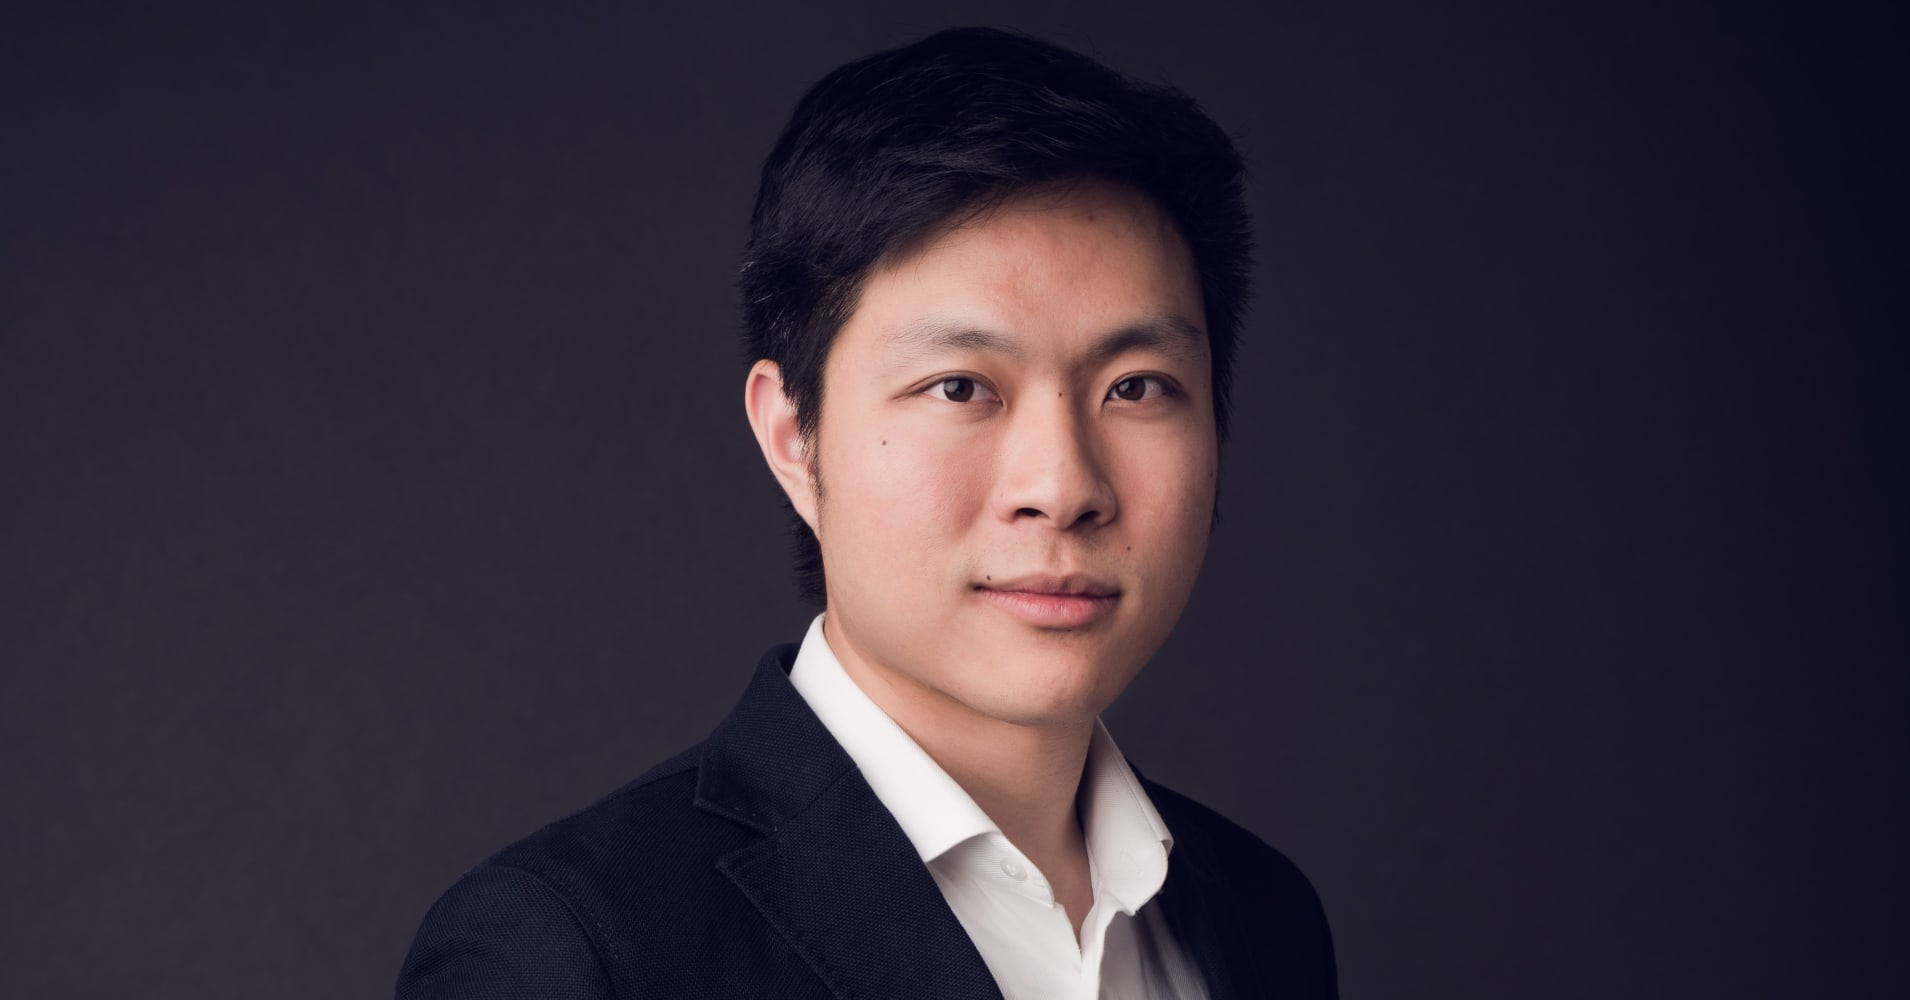 Julius Tan, co-founder and CEO of Electrify